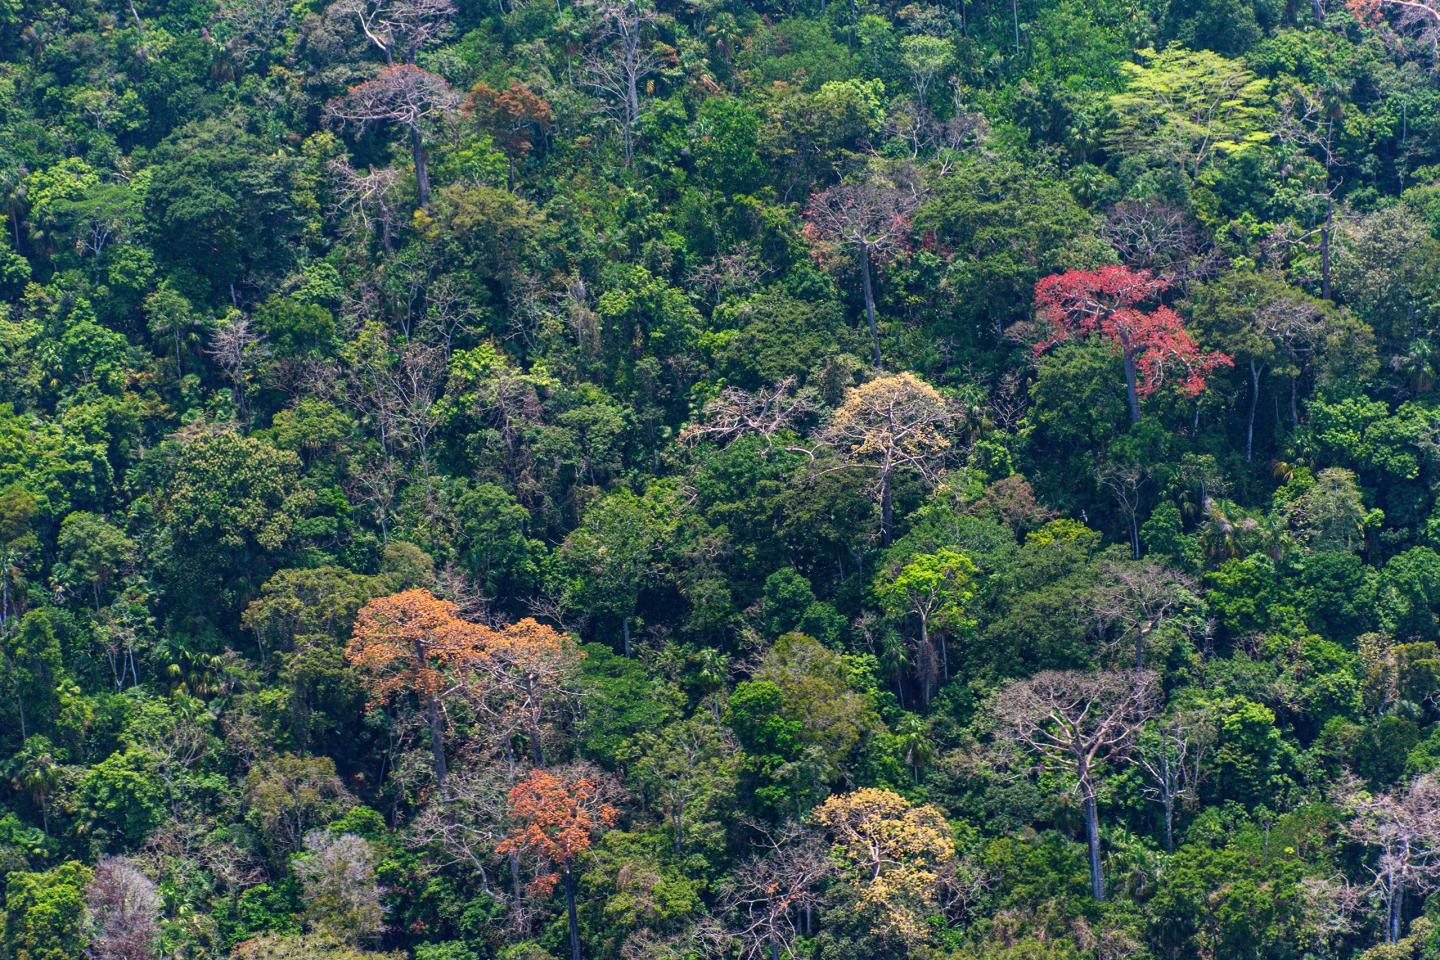 Tropical forests 1